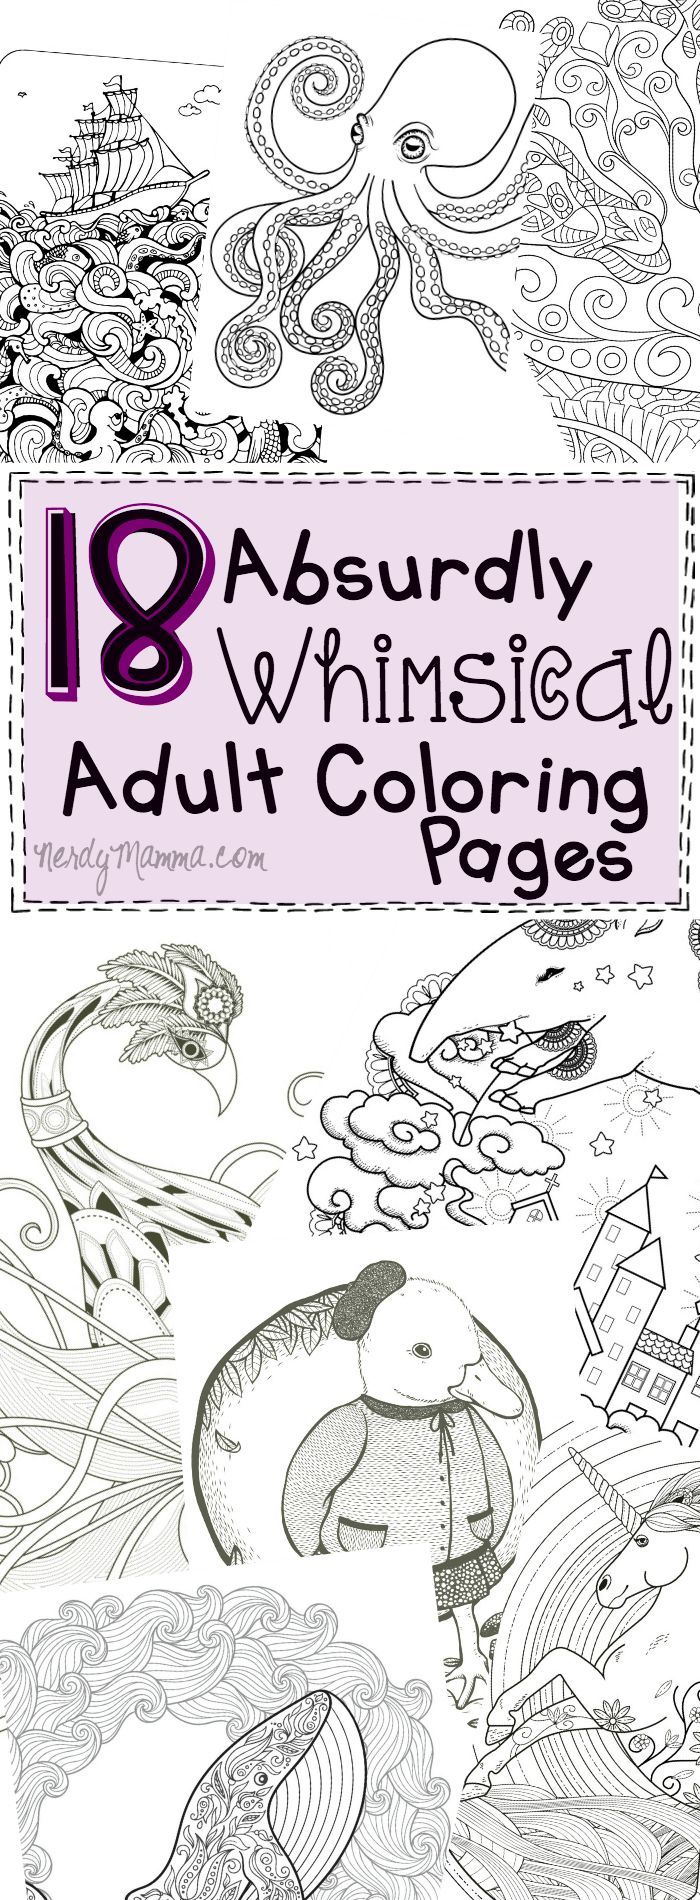 Coloring pages for down syndrome adults - 18 Absurdly Whimsical Adult Coloring Pages